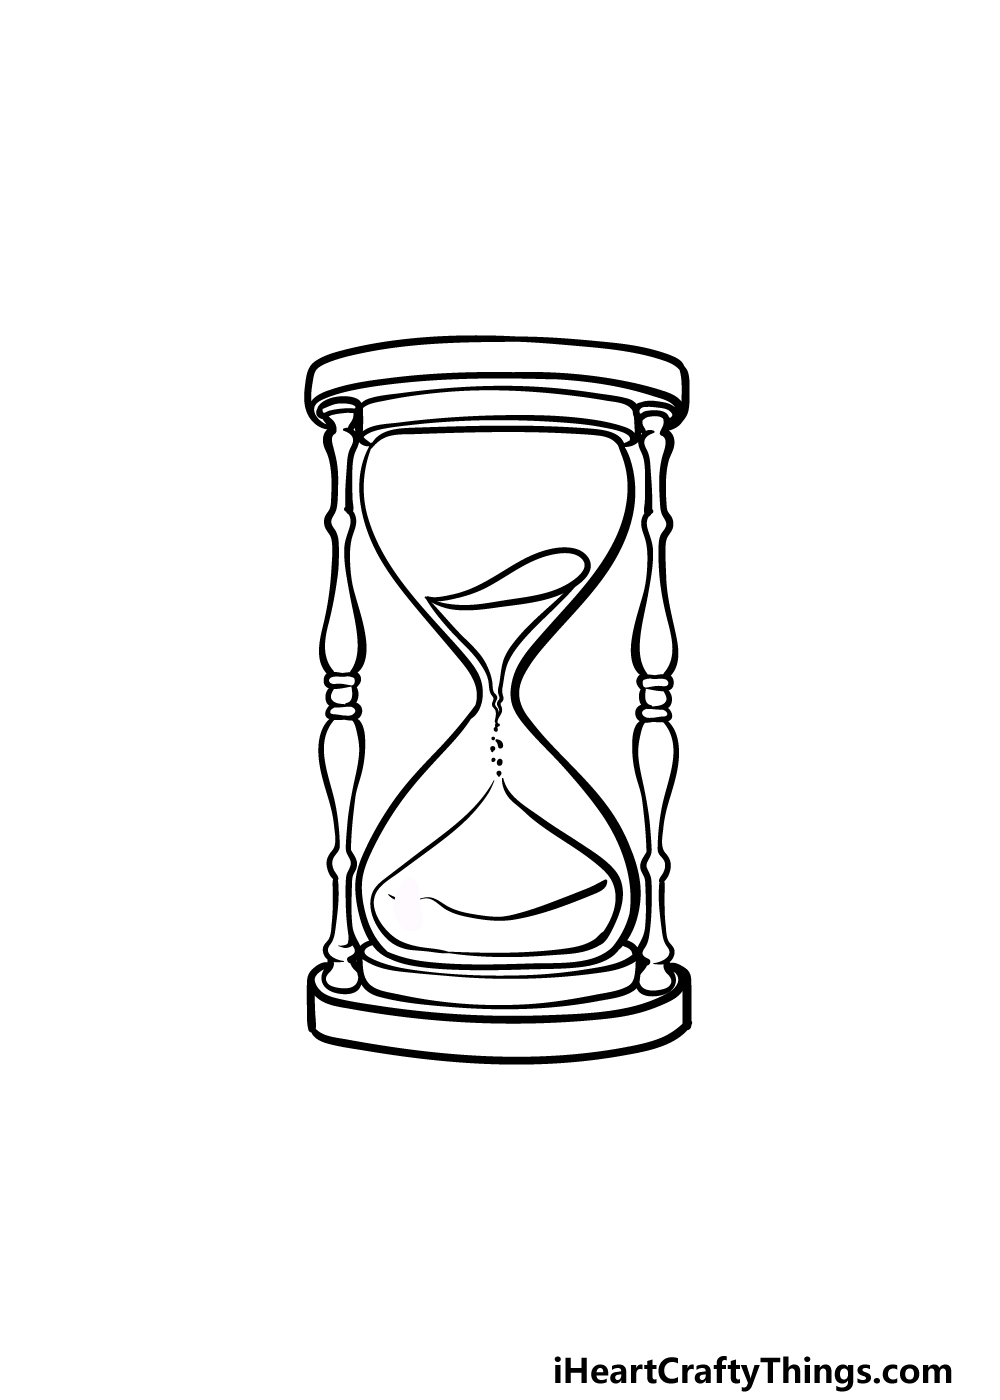 drawing an hourglass step 5